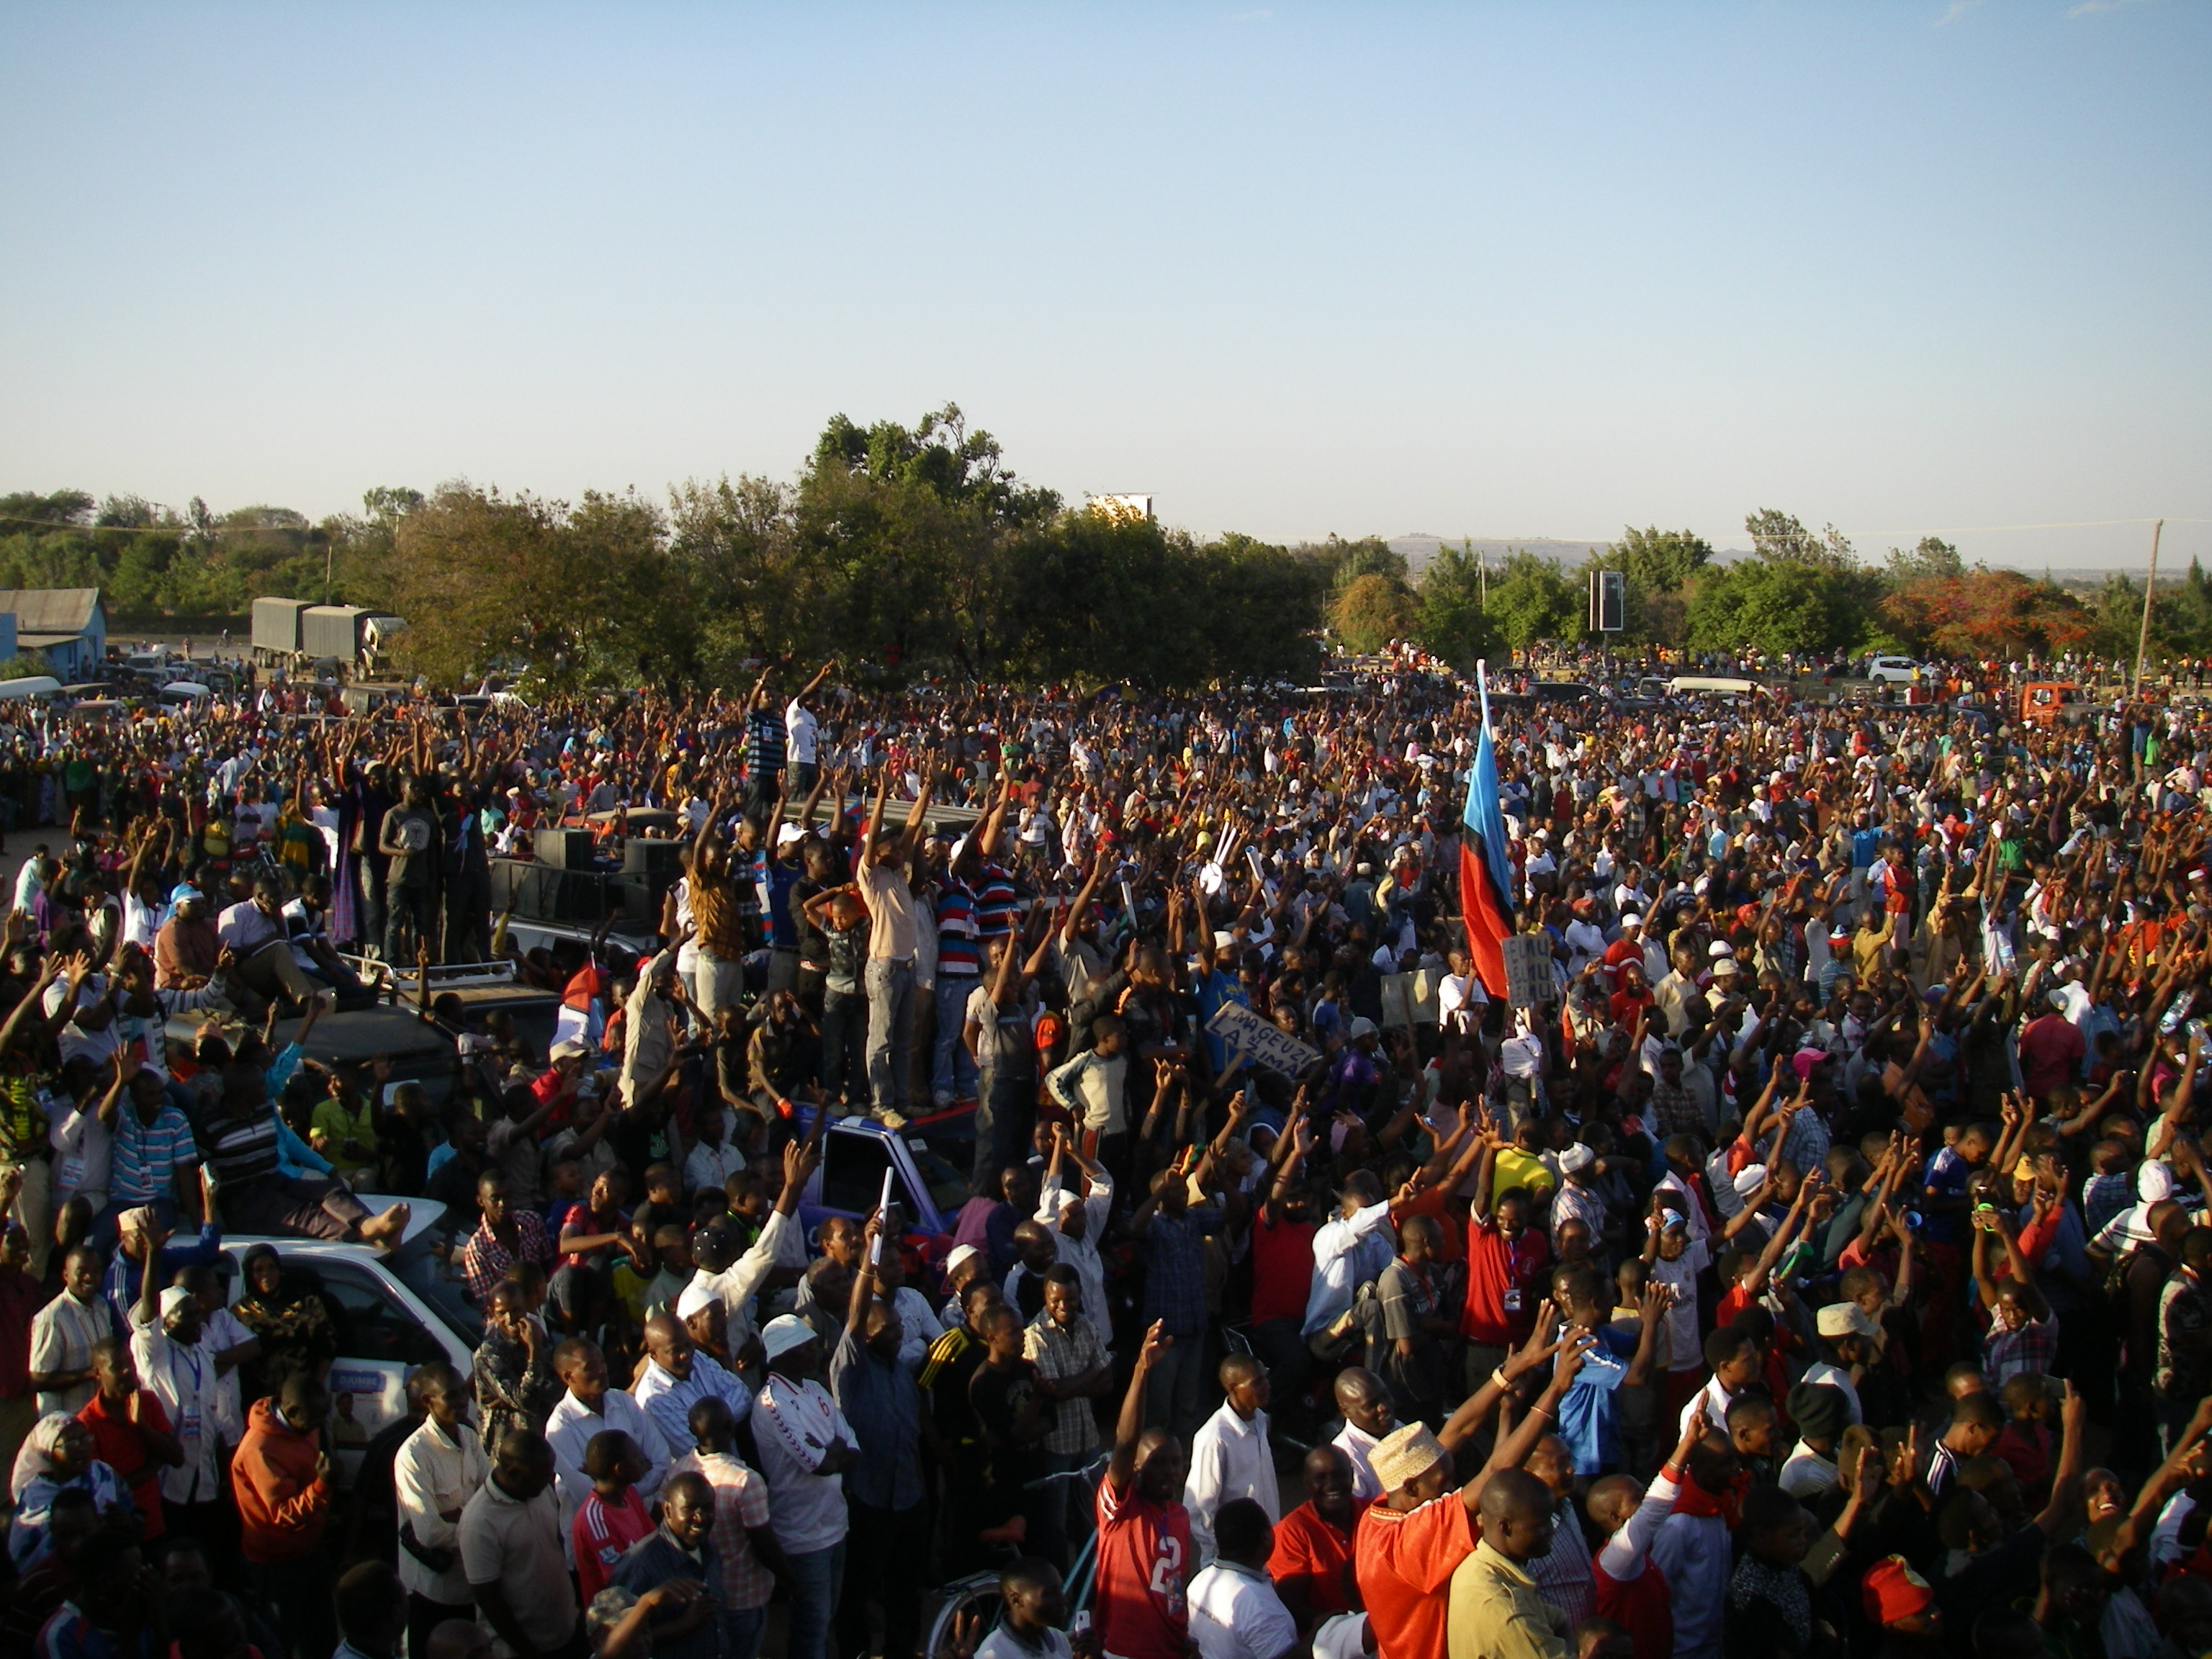 Lowassa rally by Michaela Collord